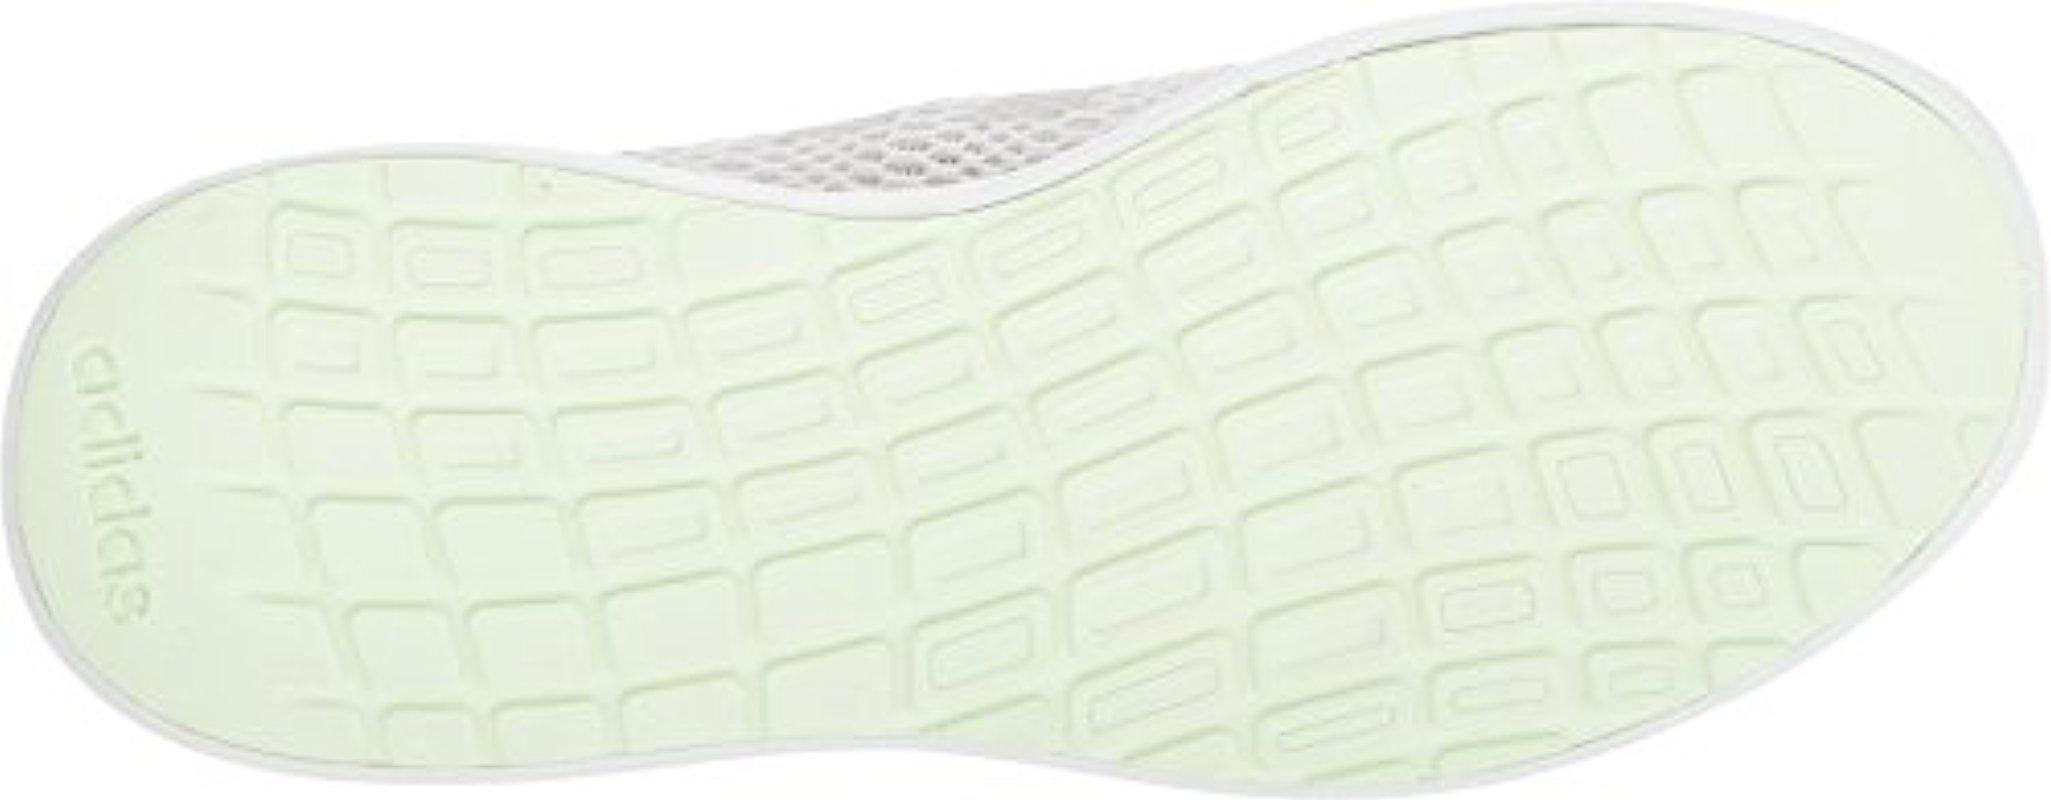 Lyst - adidas Cf Element Race W Running Shoe in White 4e03926ad813e